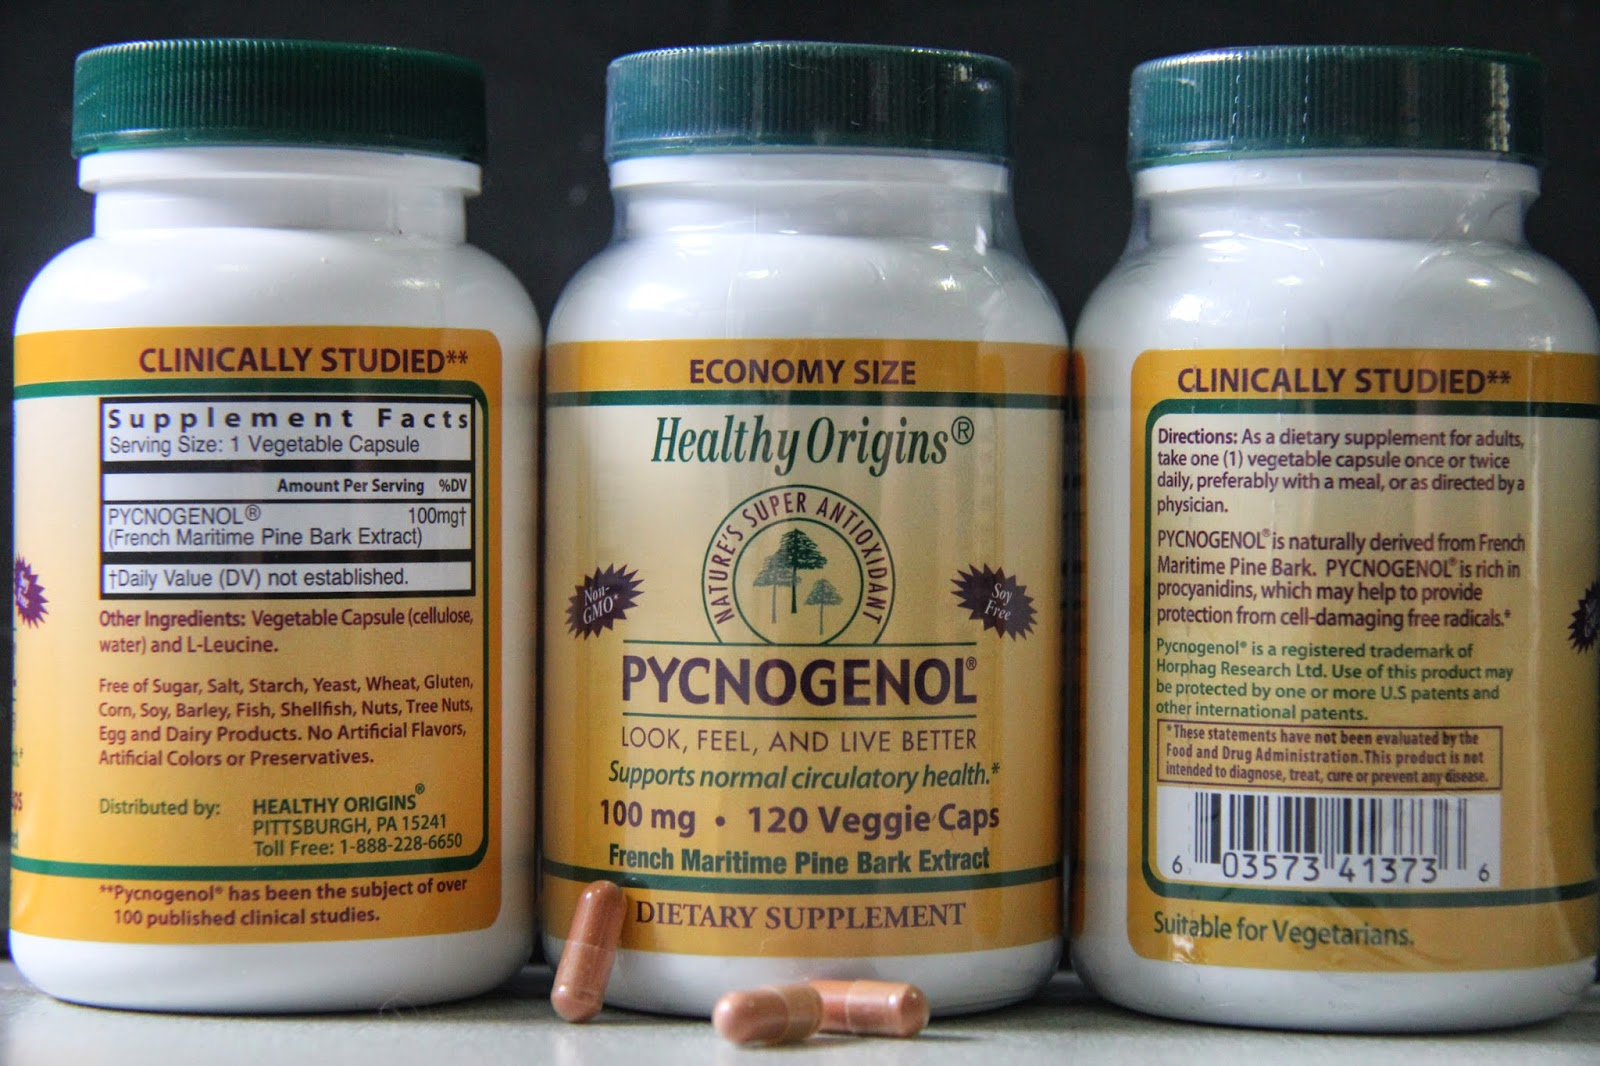 pycnogenol for varicose veins